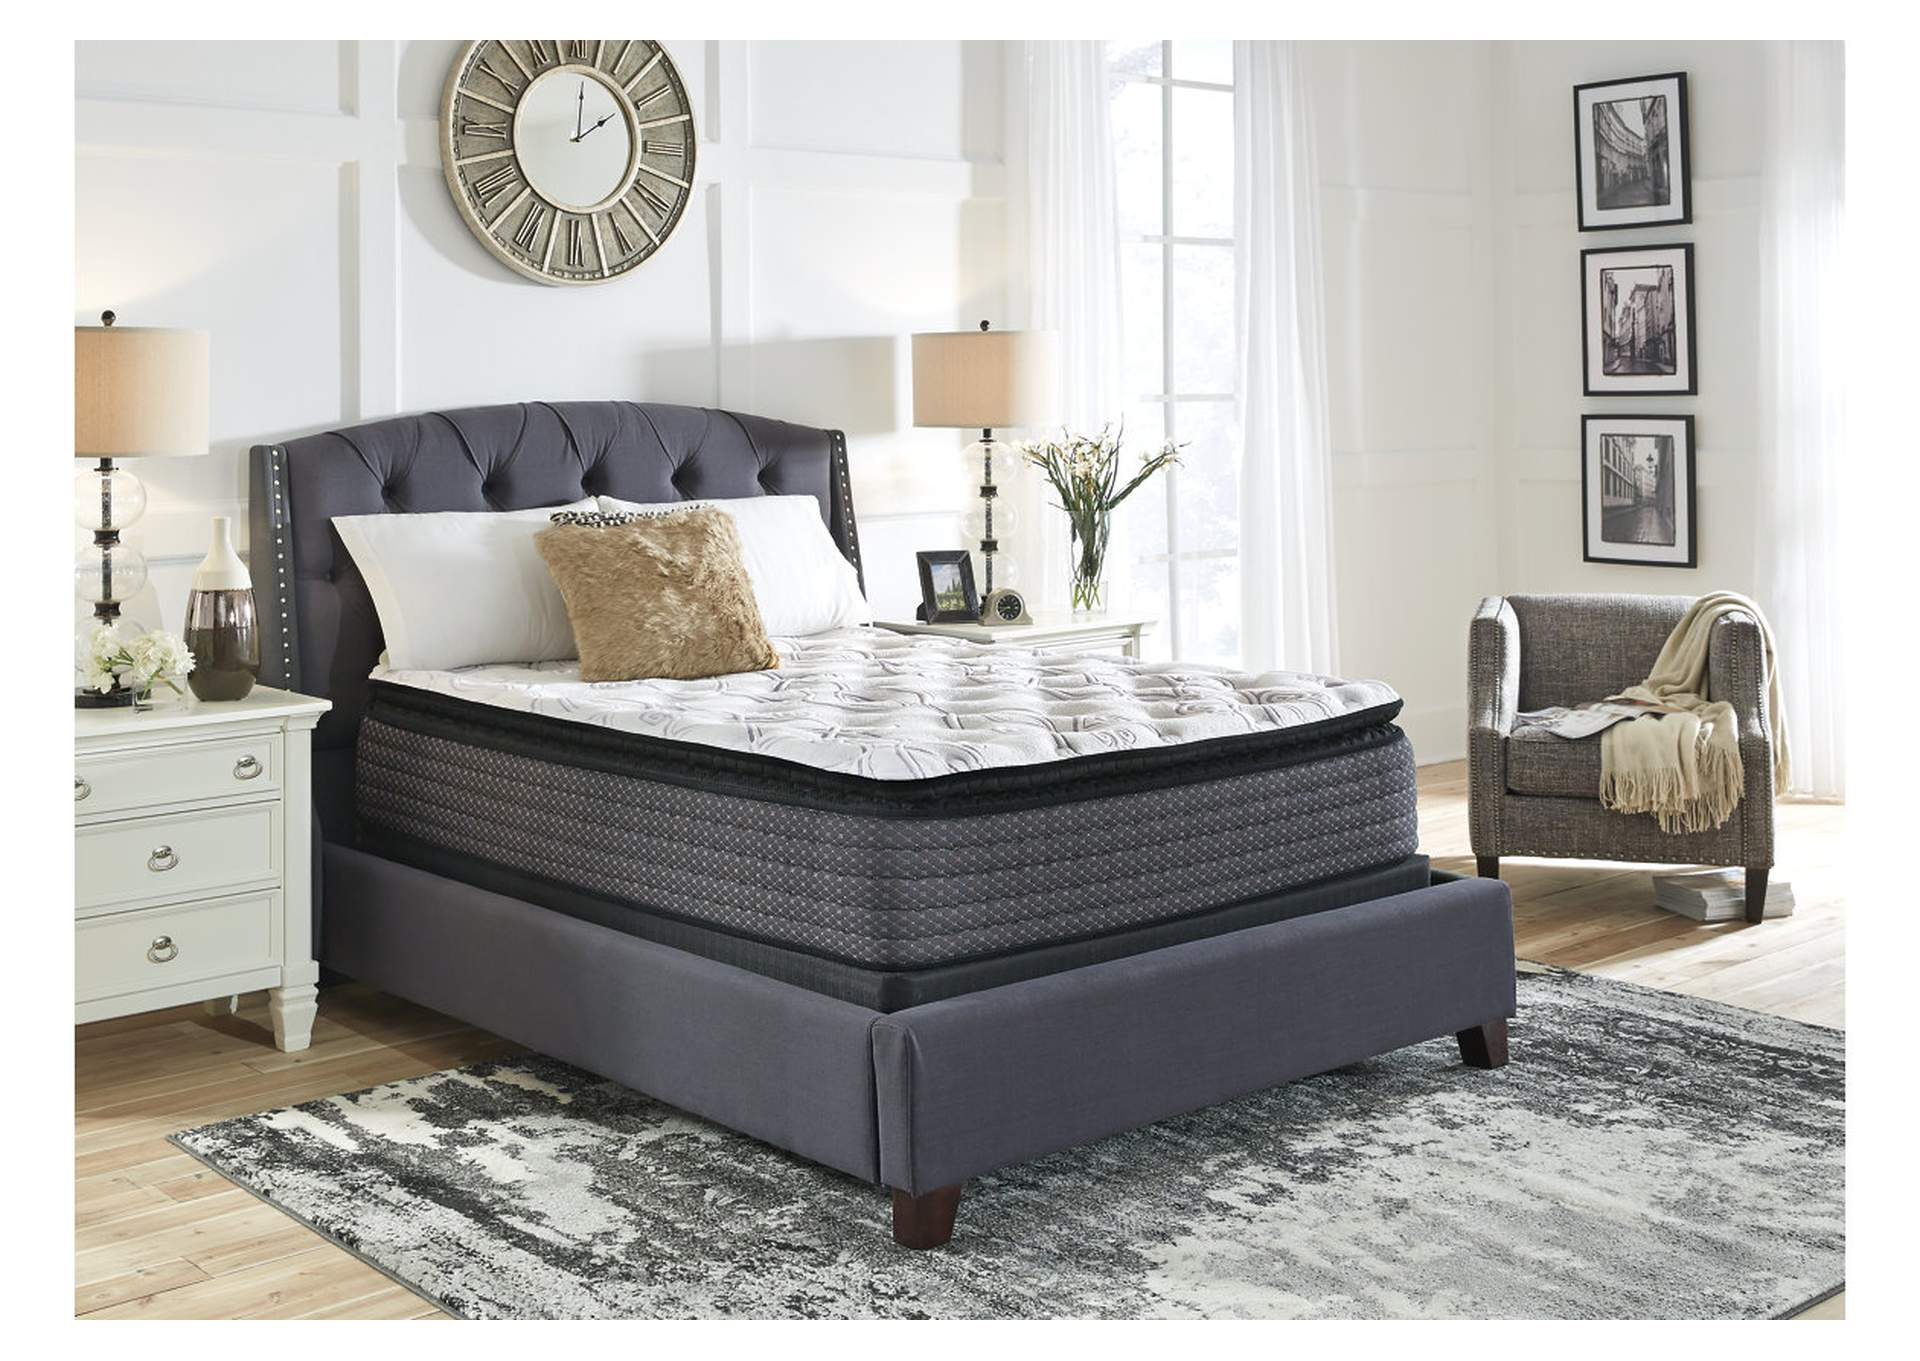 Limited Edition White Pillowtop Queen Mattress w/Foundation,Sierra Sleep by Ashley